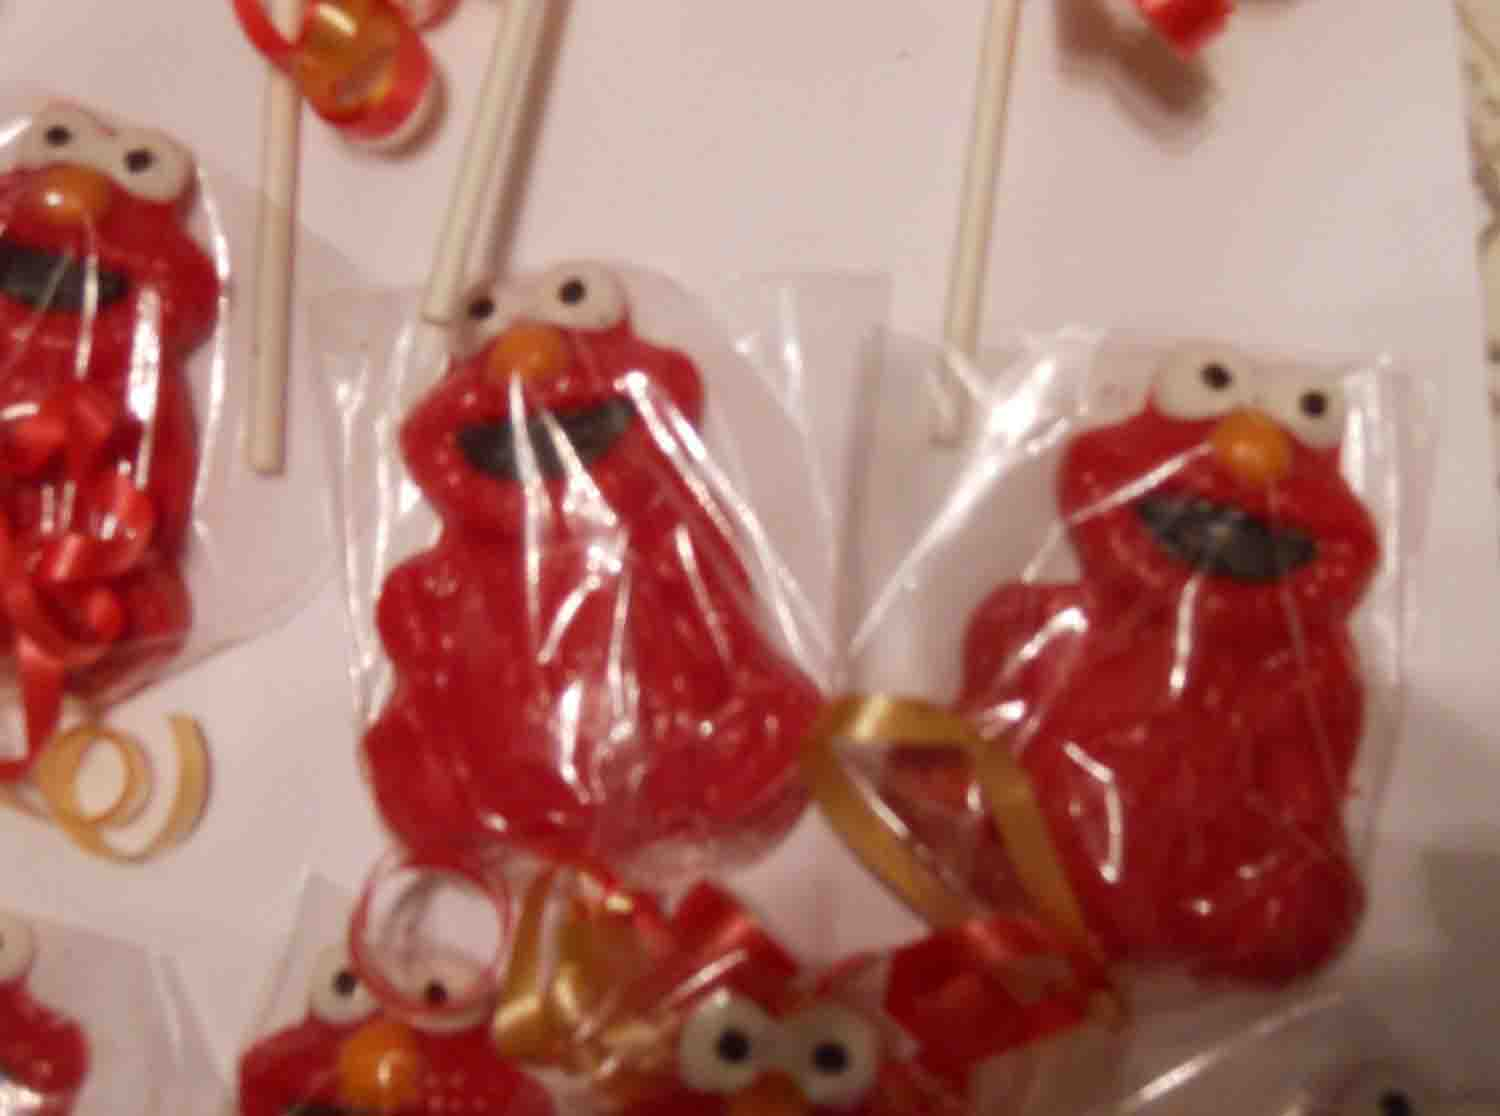 Sesame Street Elmo And Cookie Monster Racers Cake Toppers Review At